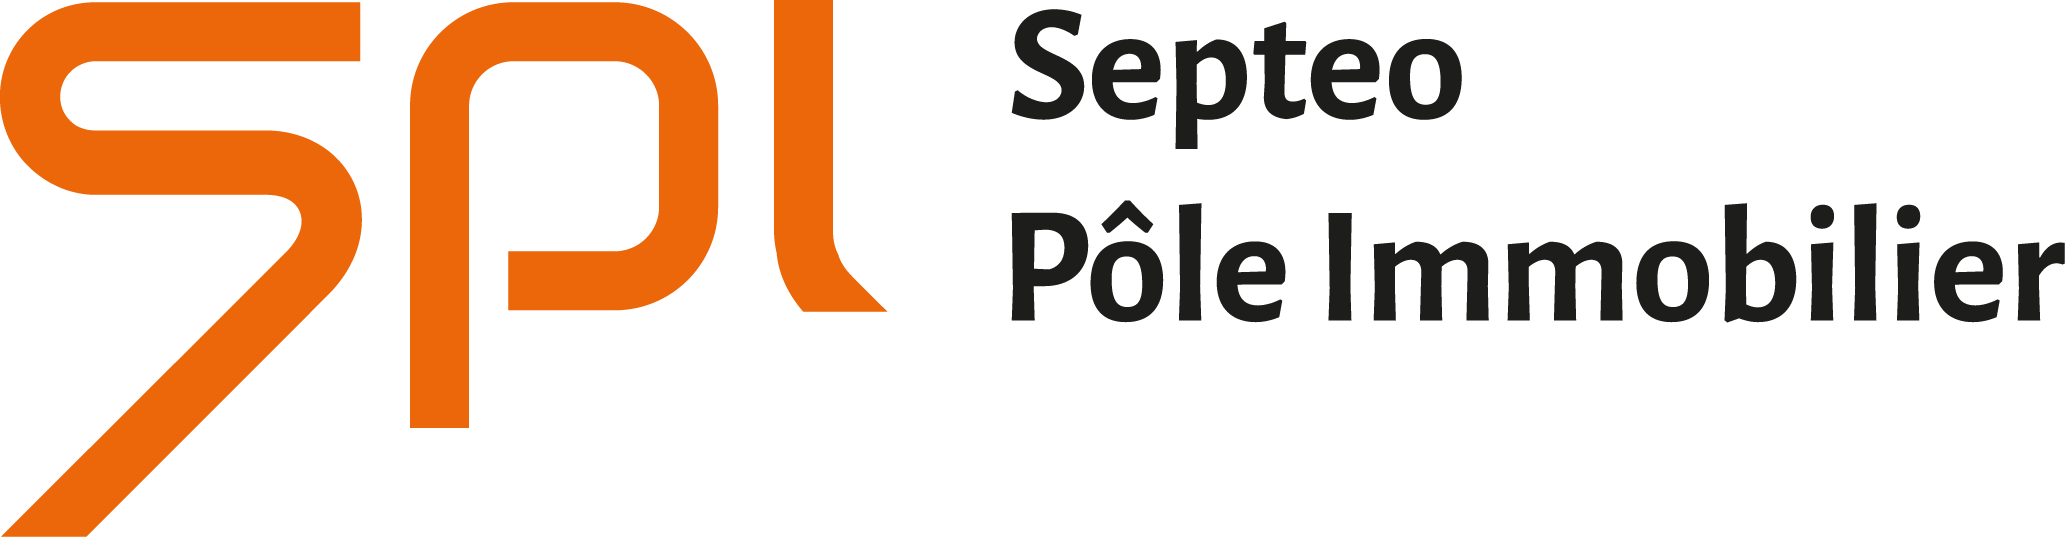 SPI - SEPTEO POLE IMMOBILIER